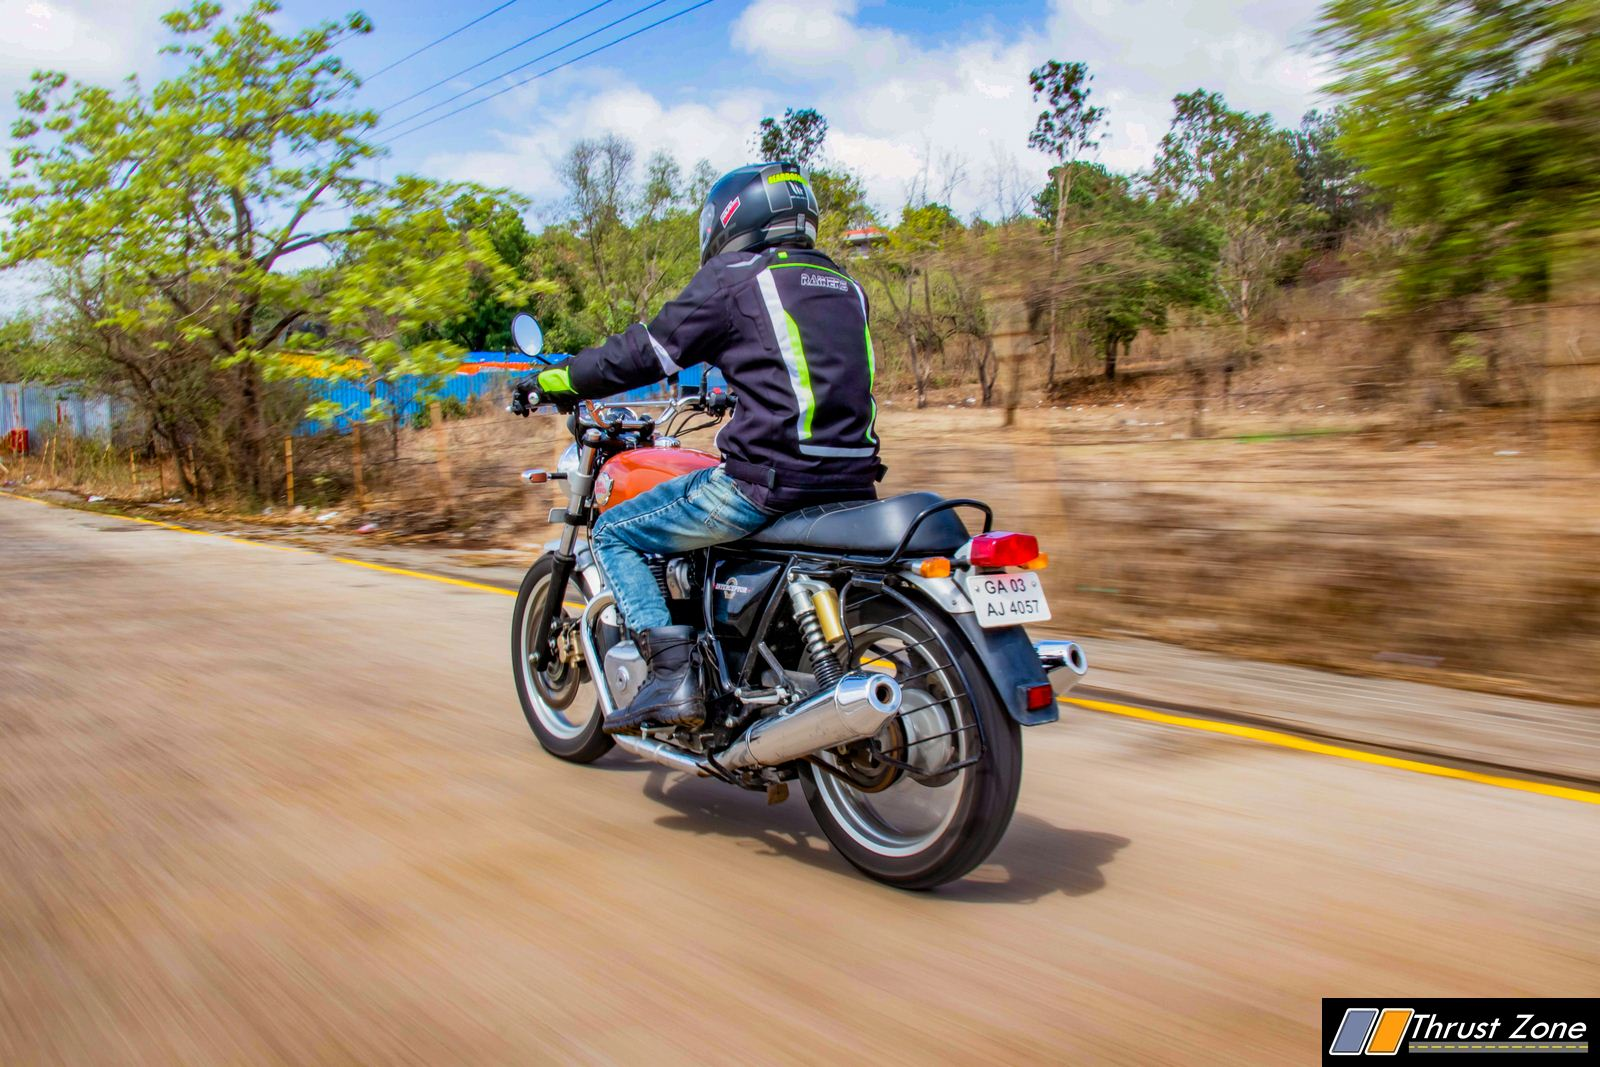 2019-Royal-Enfield-Interceptor-650-review-3